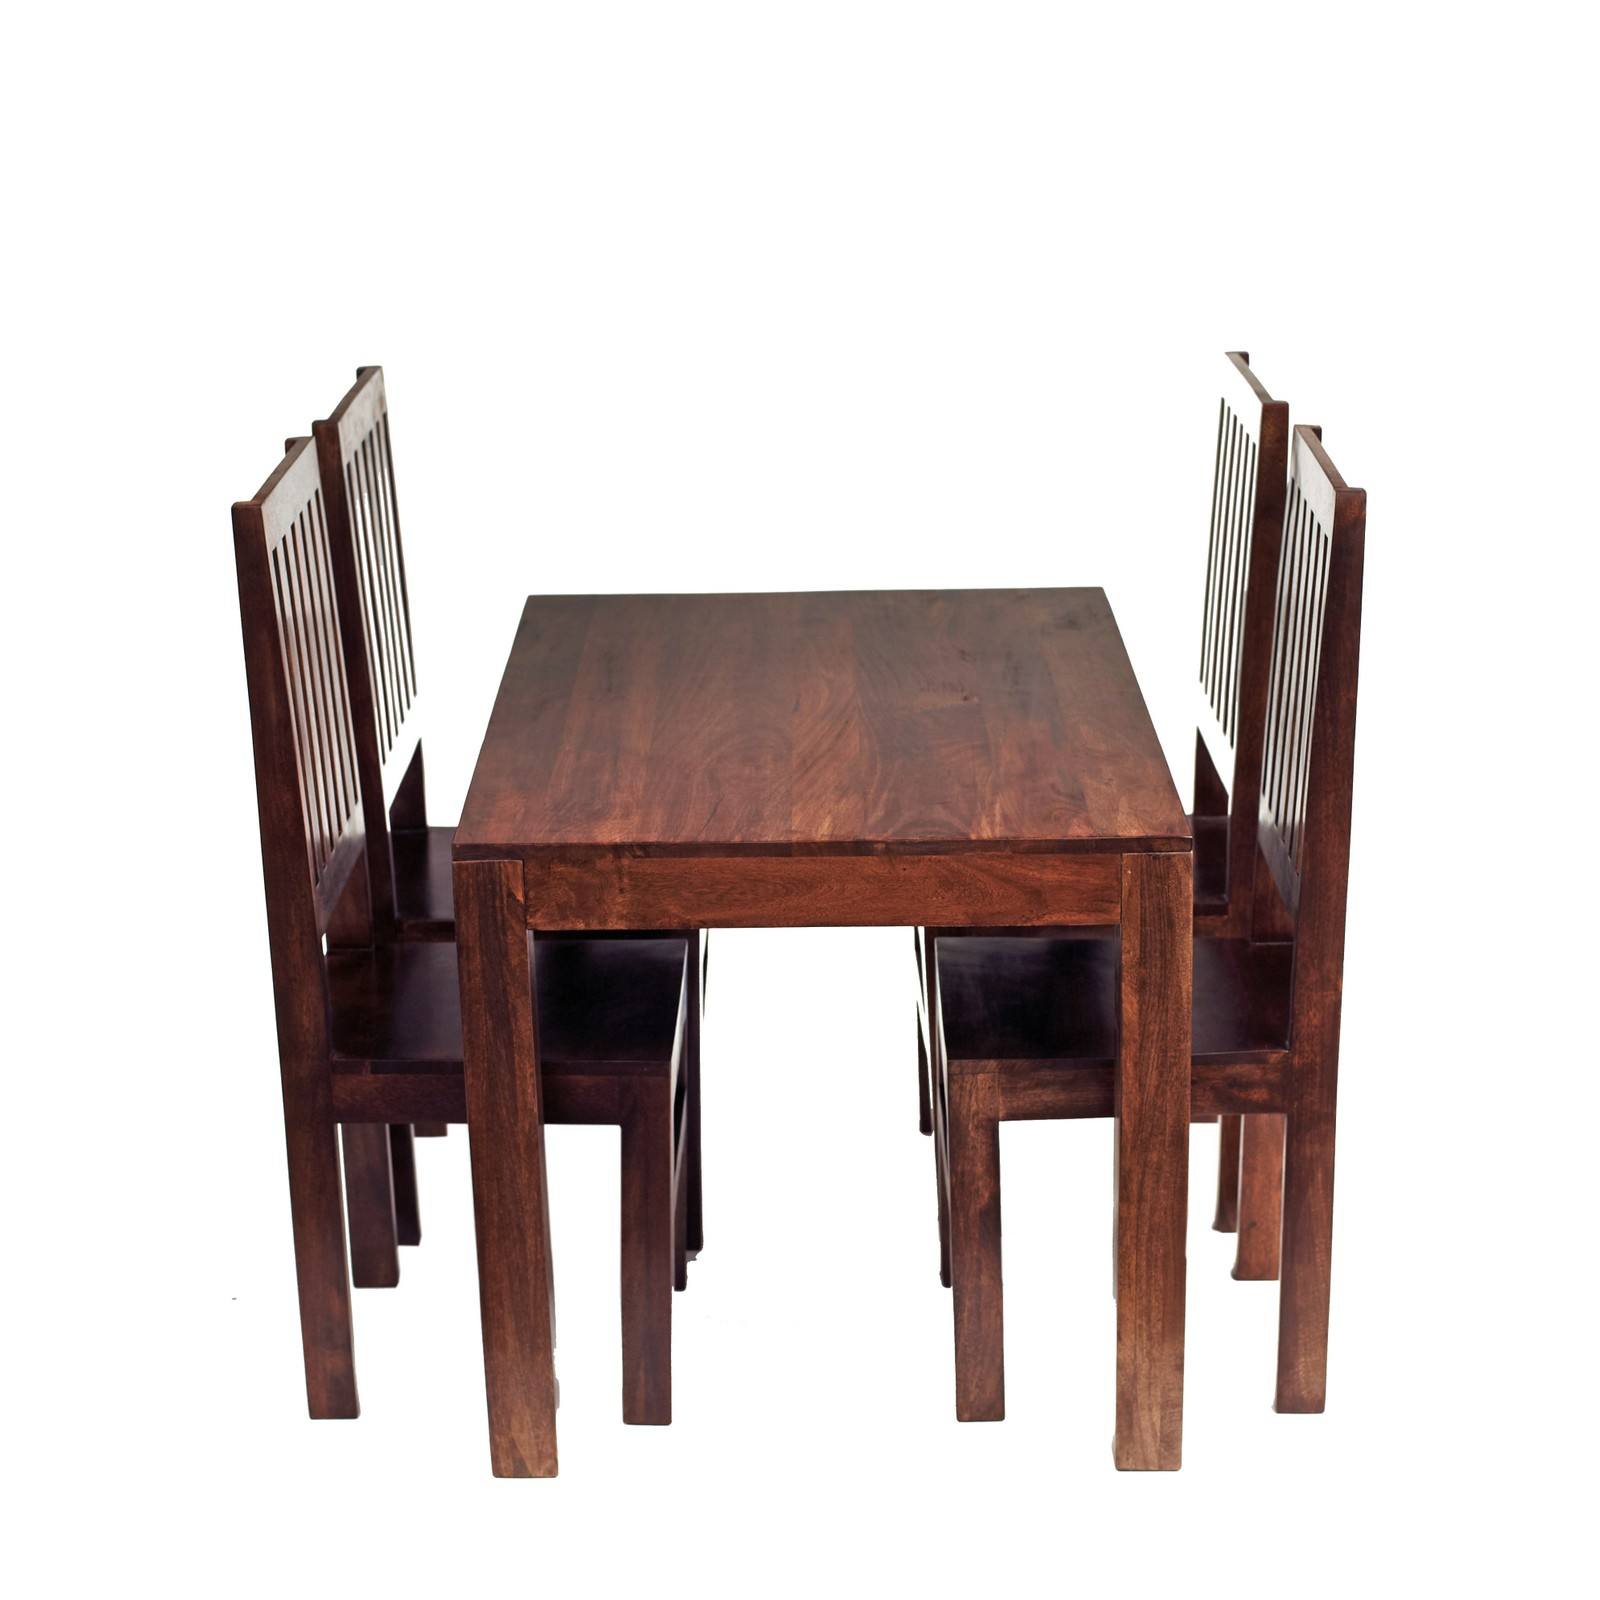 Dakota mango 4 ft dining set with wooden chairs verty indian furniture dakota mango 4 ft dining set with wooden chairs dzzzfo